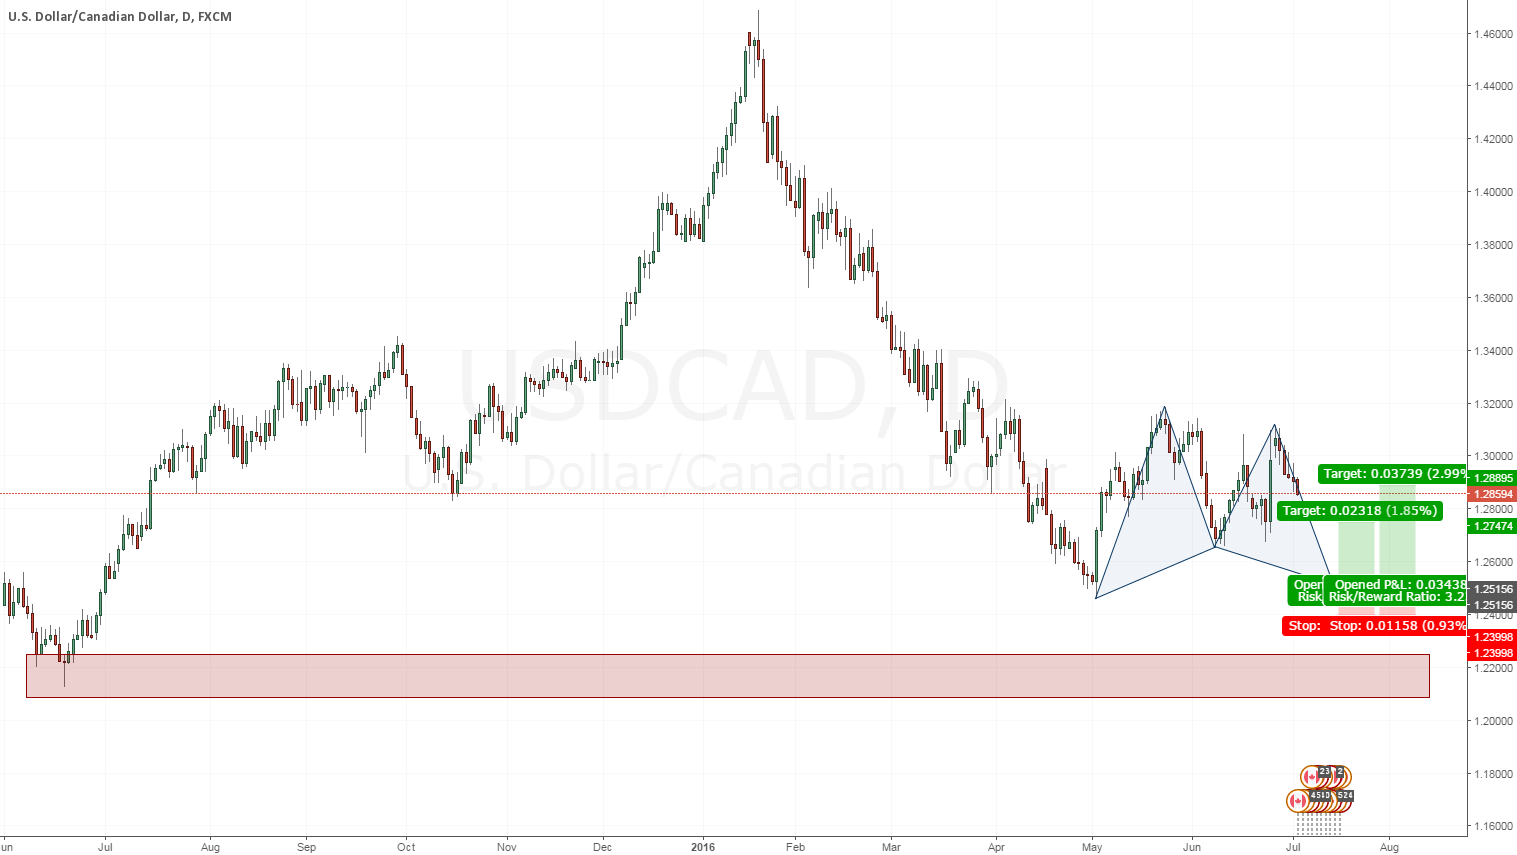 USDCAD Daily Cypher Pattern